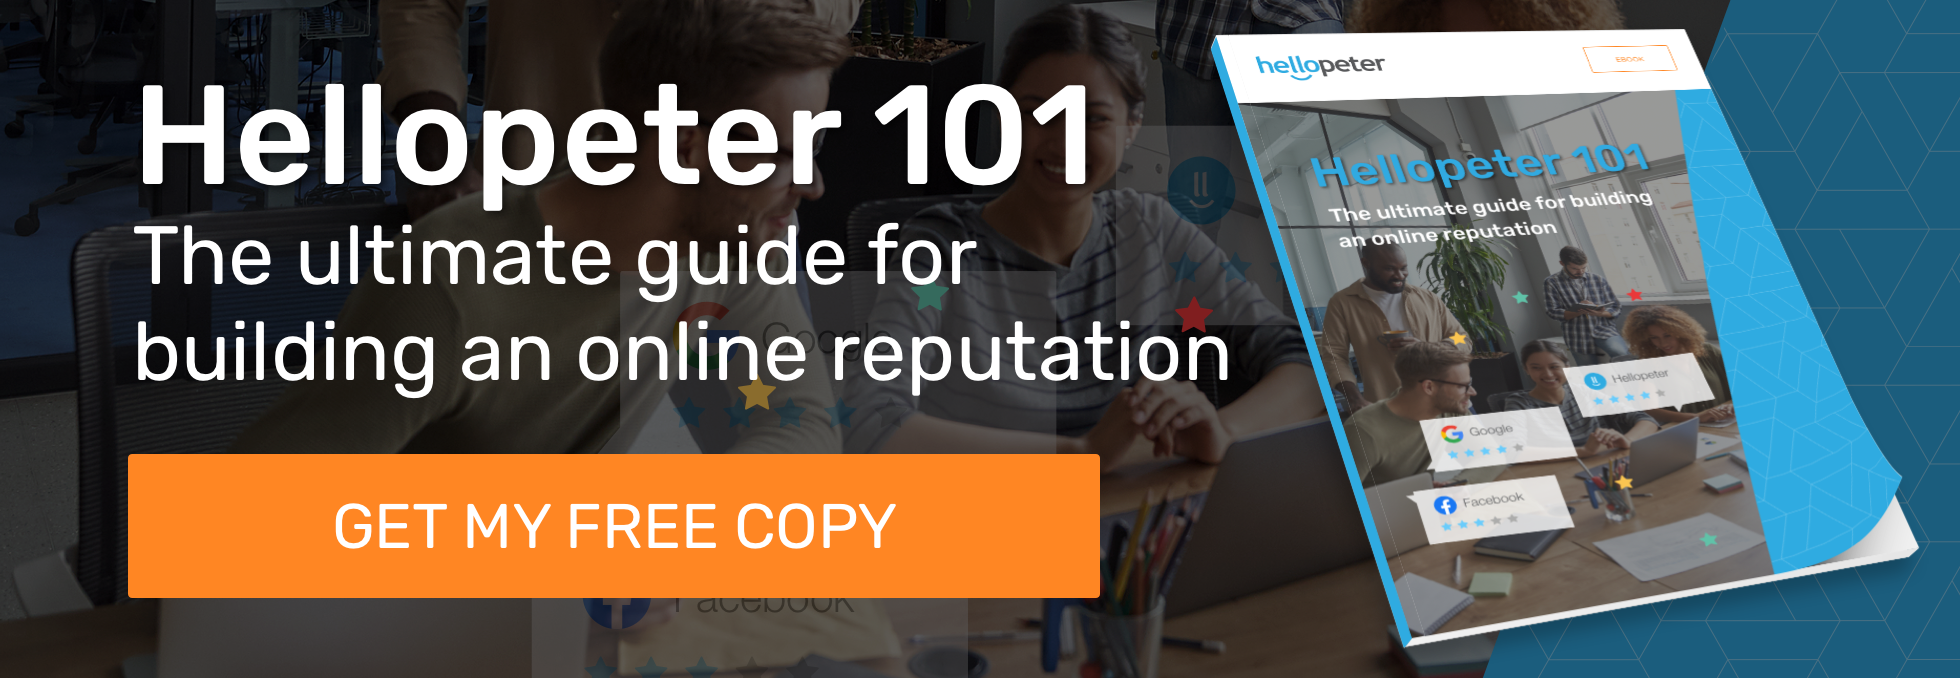 hellopeter-101-the-ulitmate-guide-for-building-and-online-reputation-blog-cta